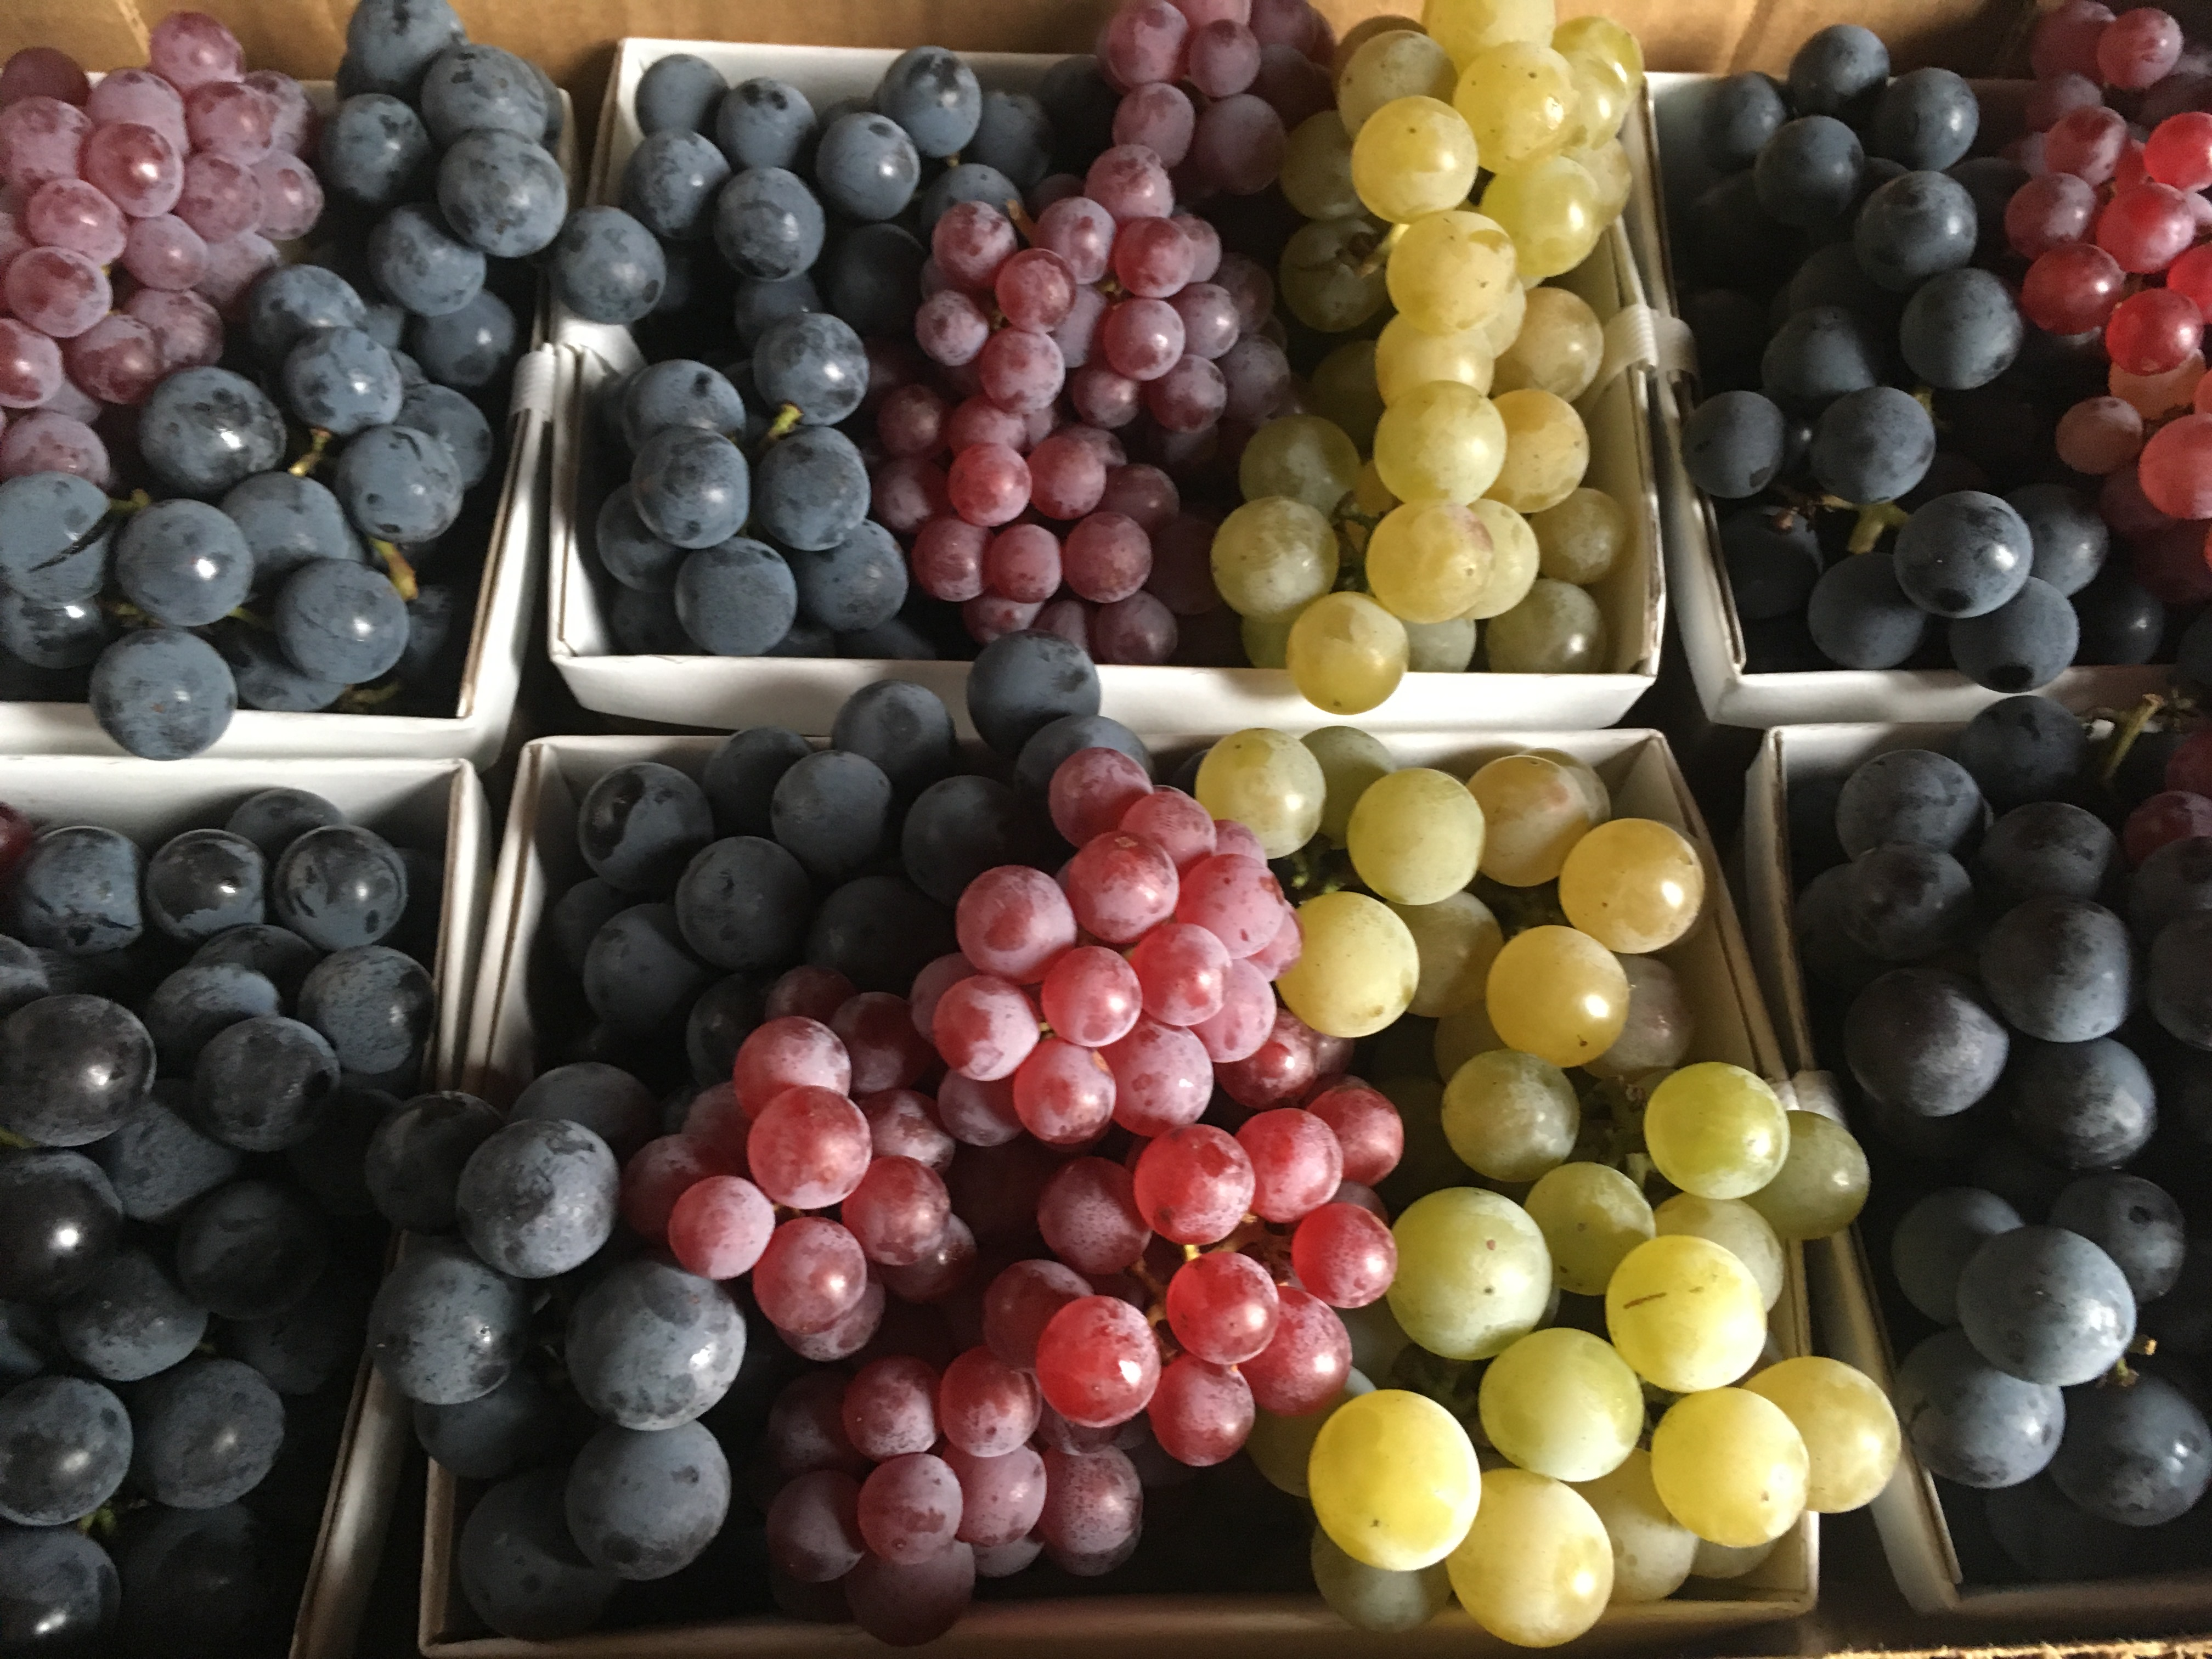 Concord, Niagara and Delaware grapes ready for Charlottesville's City Market.